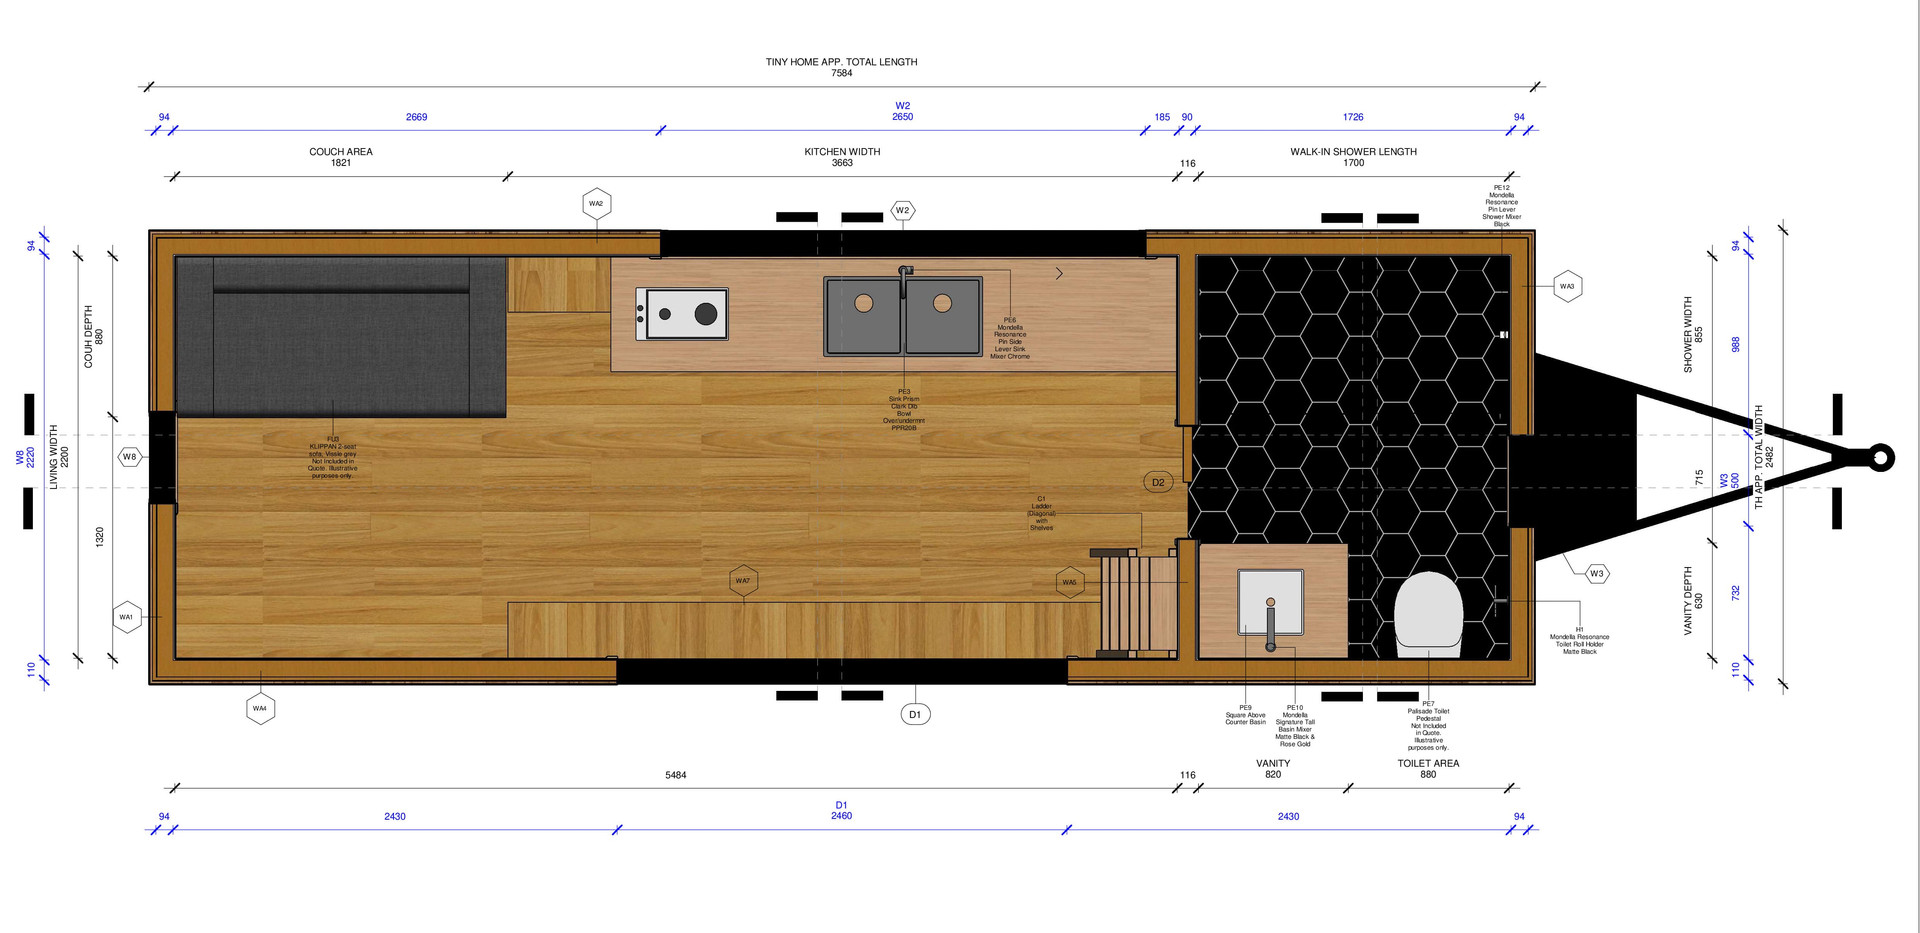 Eureka Tiny Home_006-min.jpg